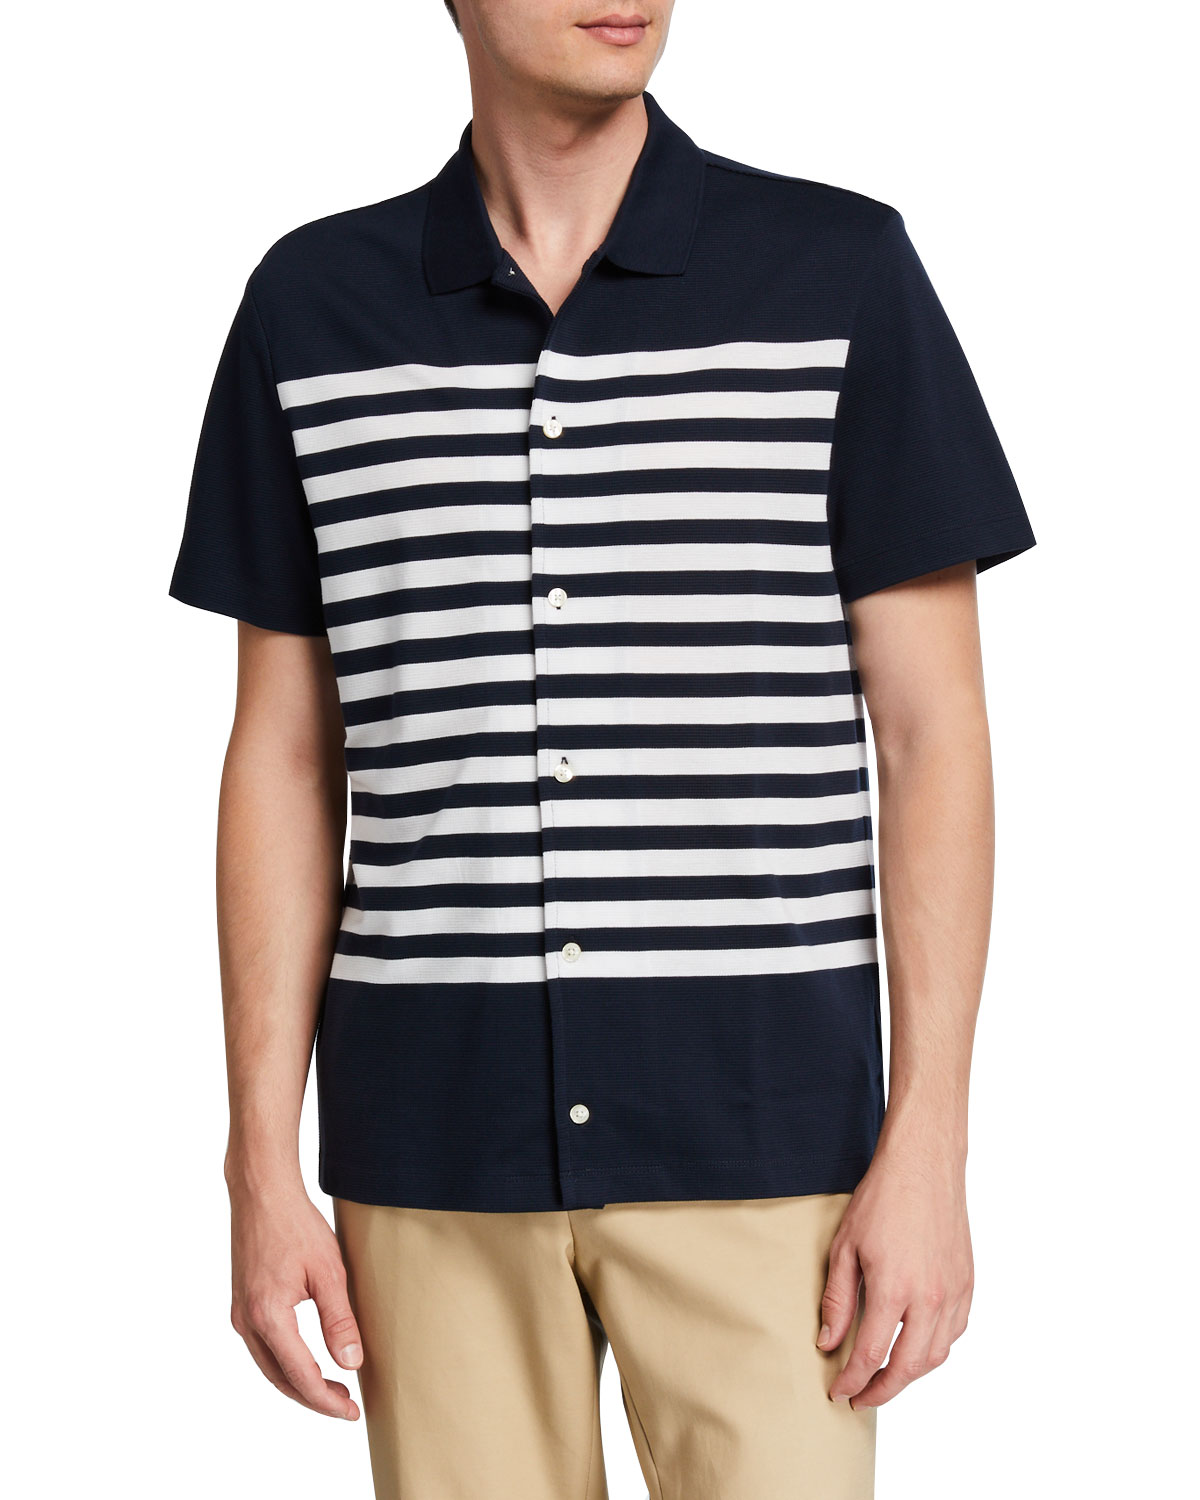 Michael Kors T-shirts MEN'S STRIPED SHORT-SLEEVE SPORT SHIRT